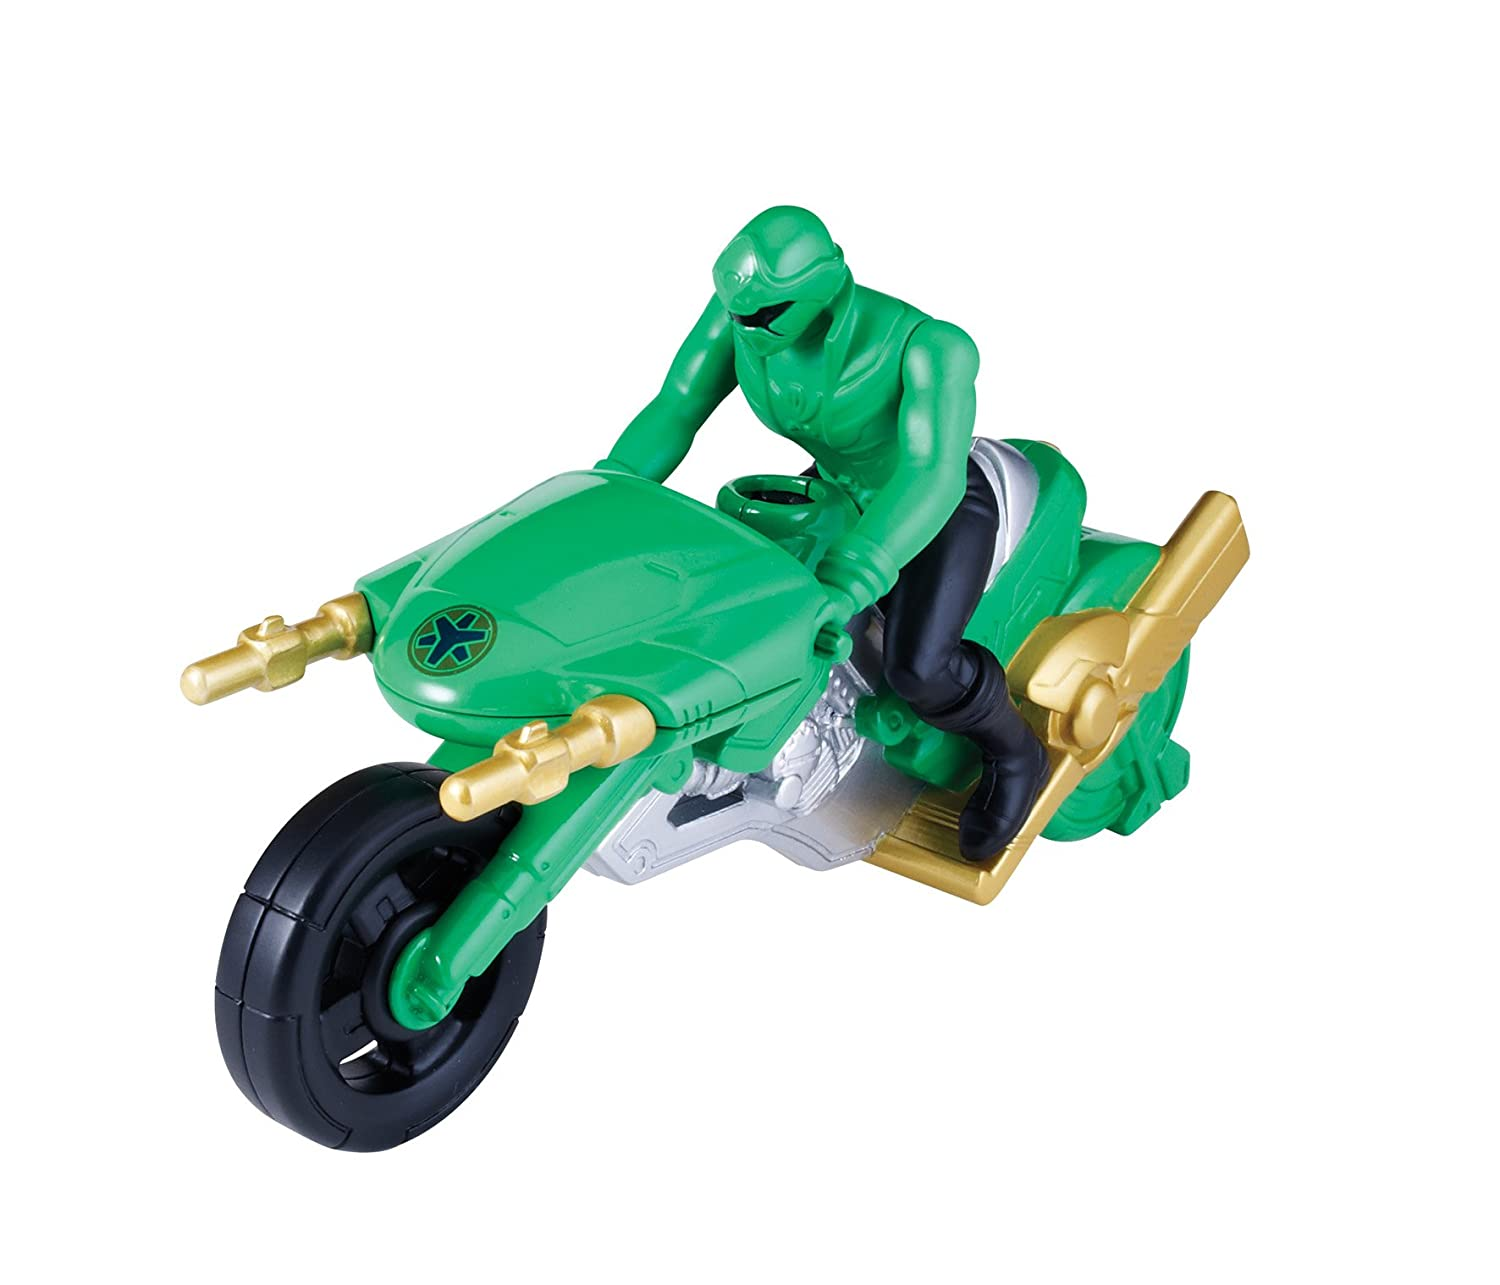 Power Rangers Súper Megaforce - Moto de ataque, color verde (Bandai ...